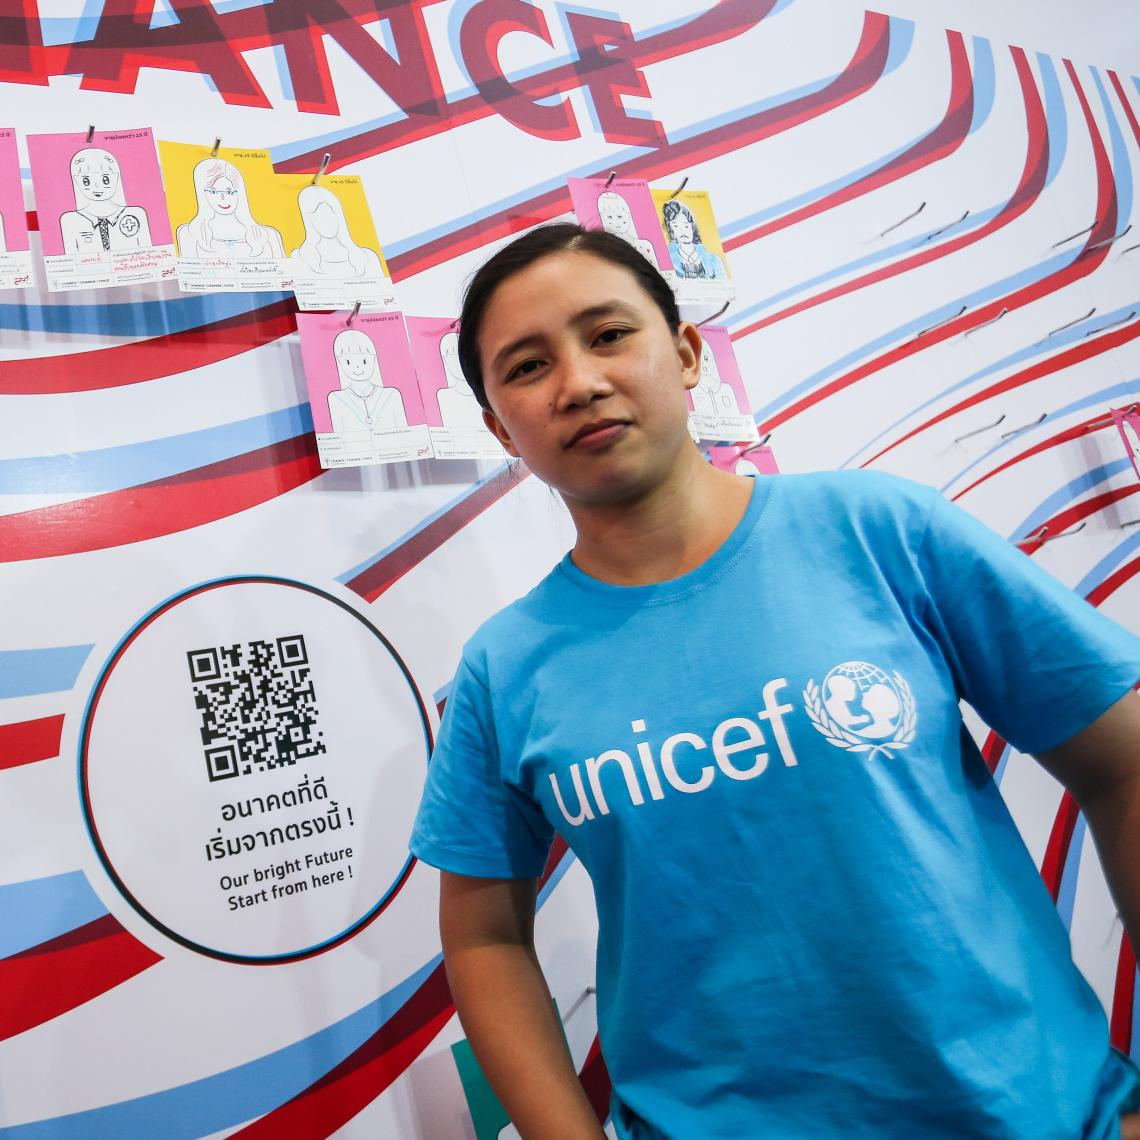 A young lady wearing UNICEF cyan blue t-shirt standing in front of a colorful backdrop.